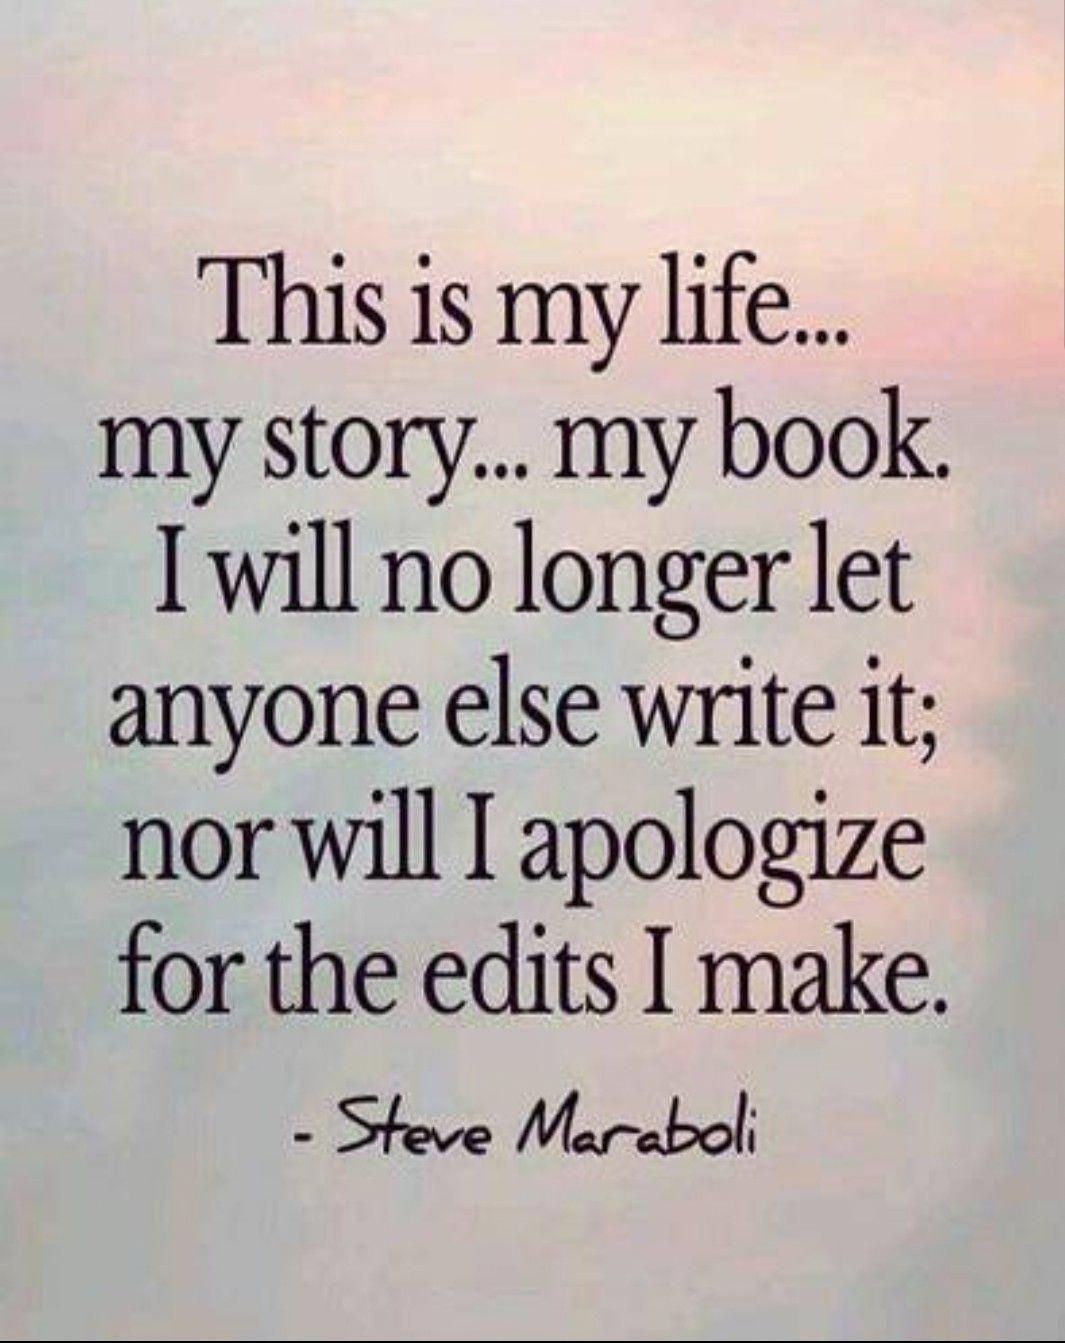 I M Rewriting The End Of My Story This Isn T Taking Me Down It S Only Building Me For The Ending I Deserve Numerologylifepat Words Of Wisdom Words Quotes